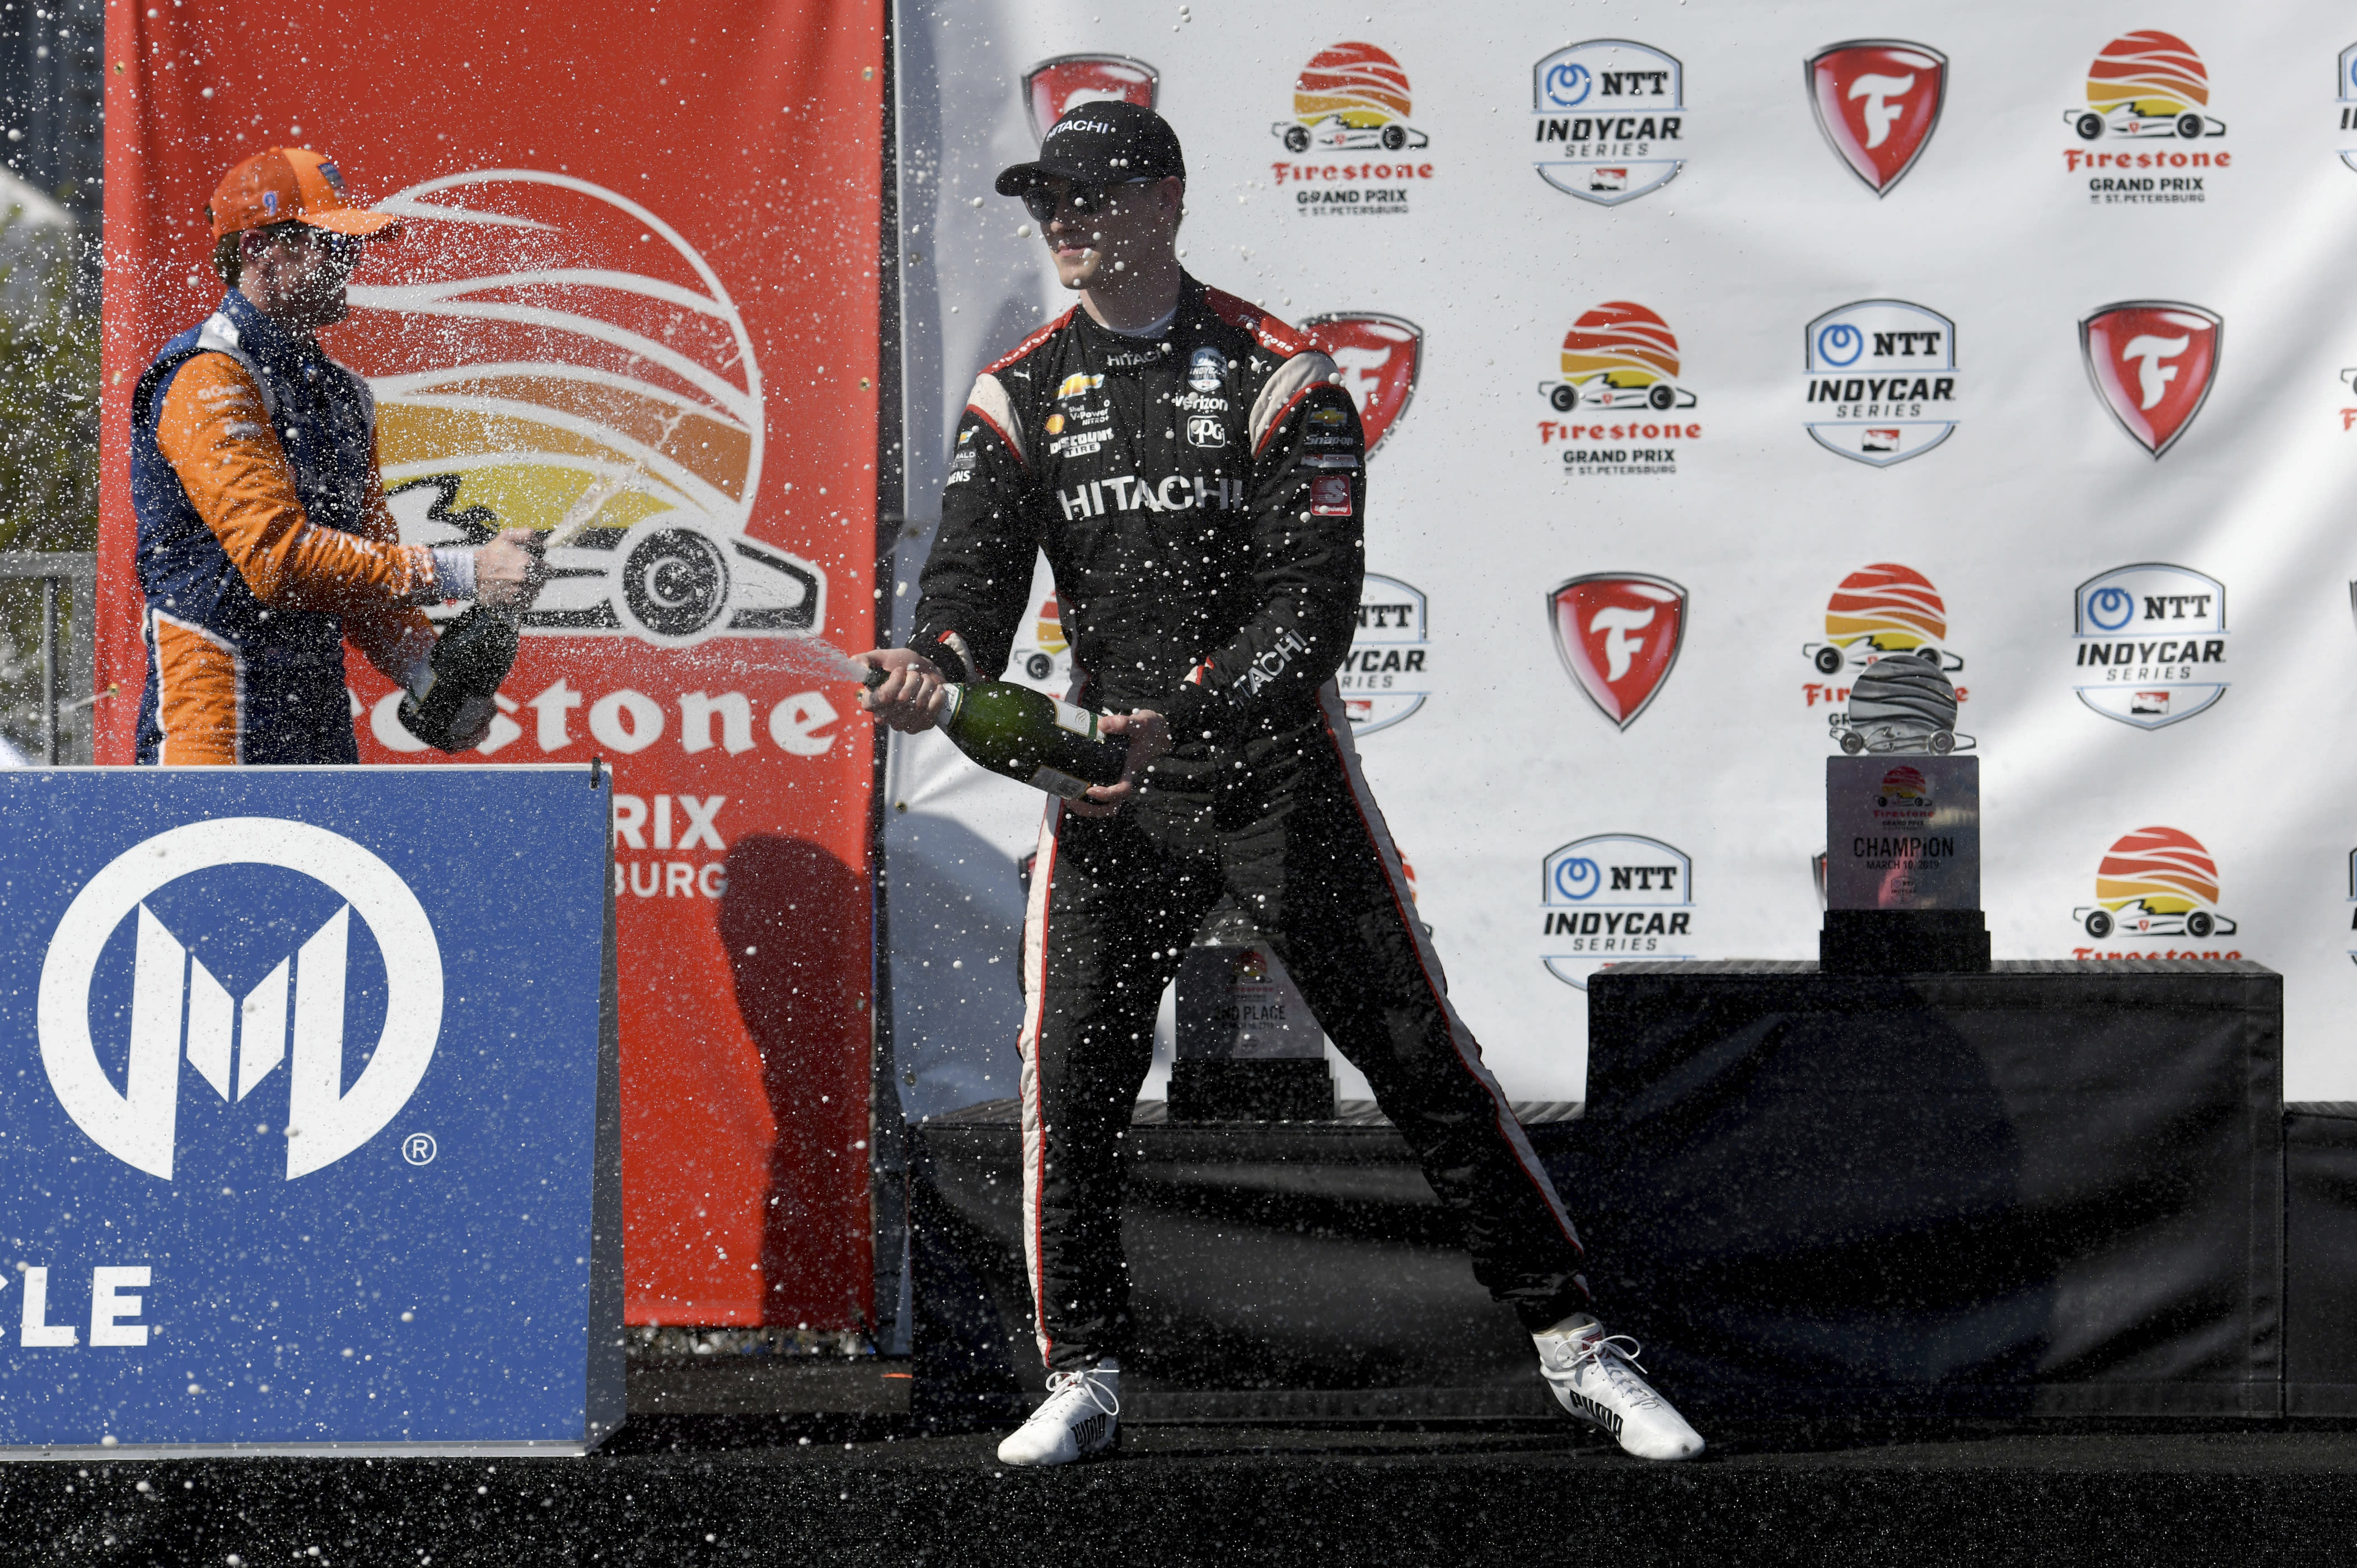 Firestone Hours Sunday >> Another Race And Another Penske Victory With Indycar Win